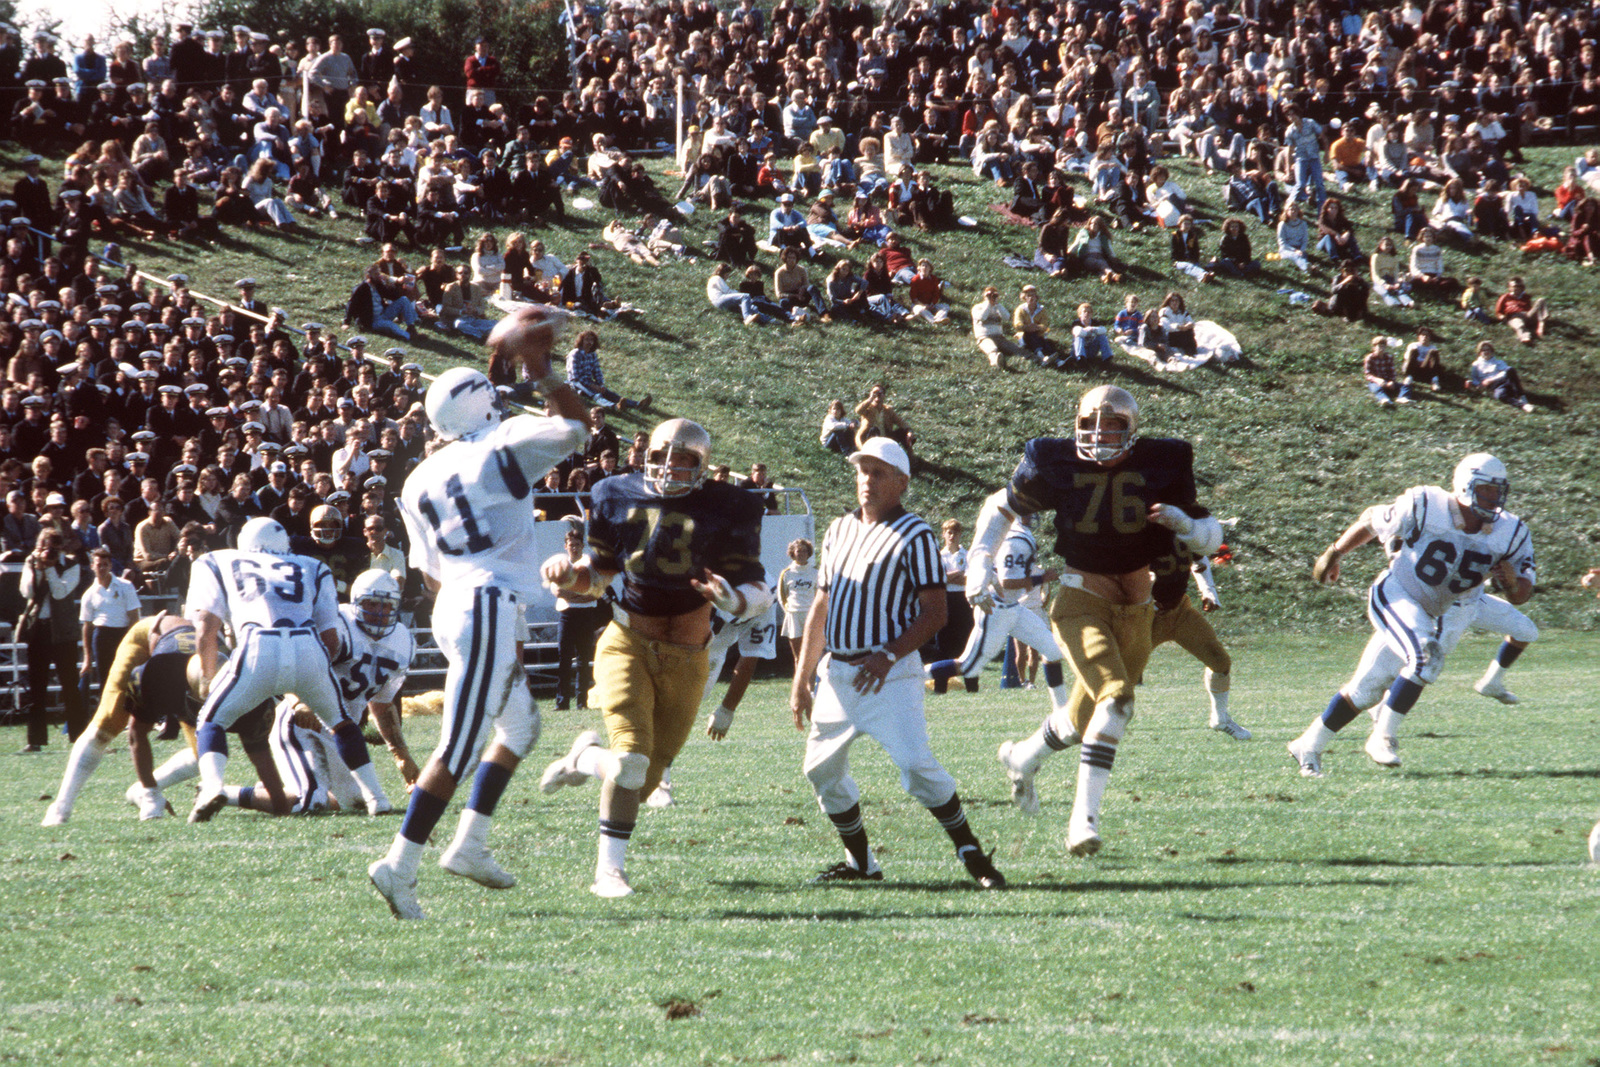 The United States Naval Academy Football Team Plays At The United